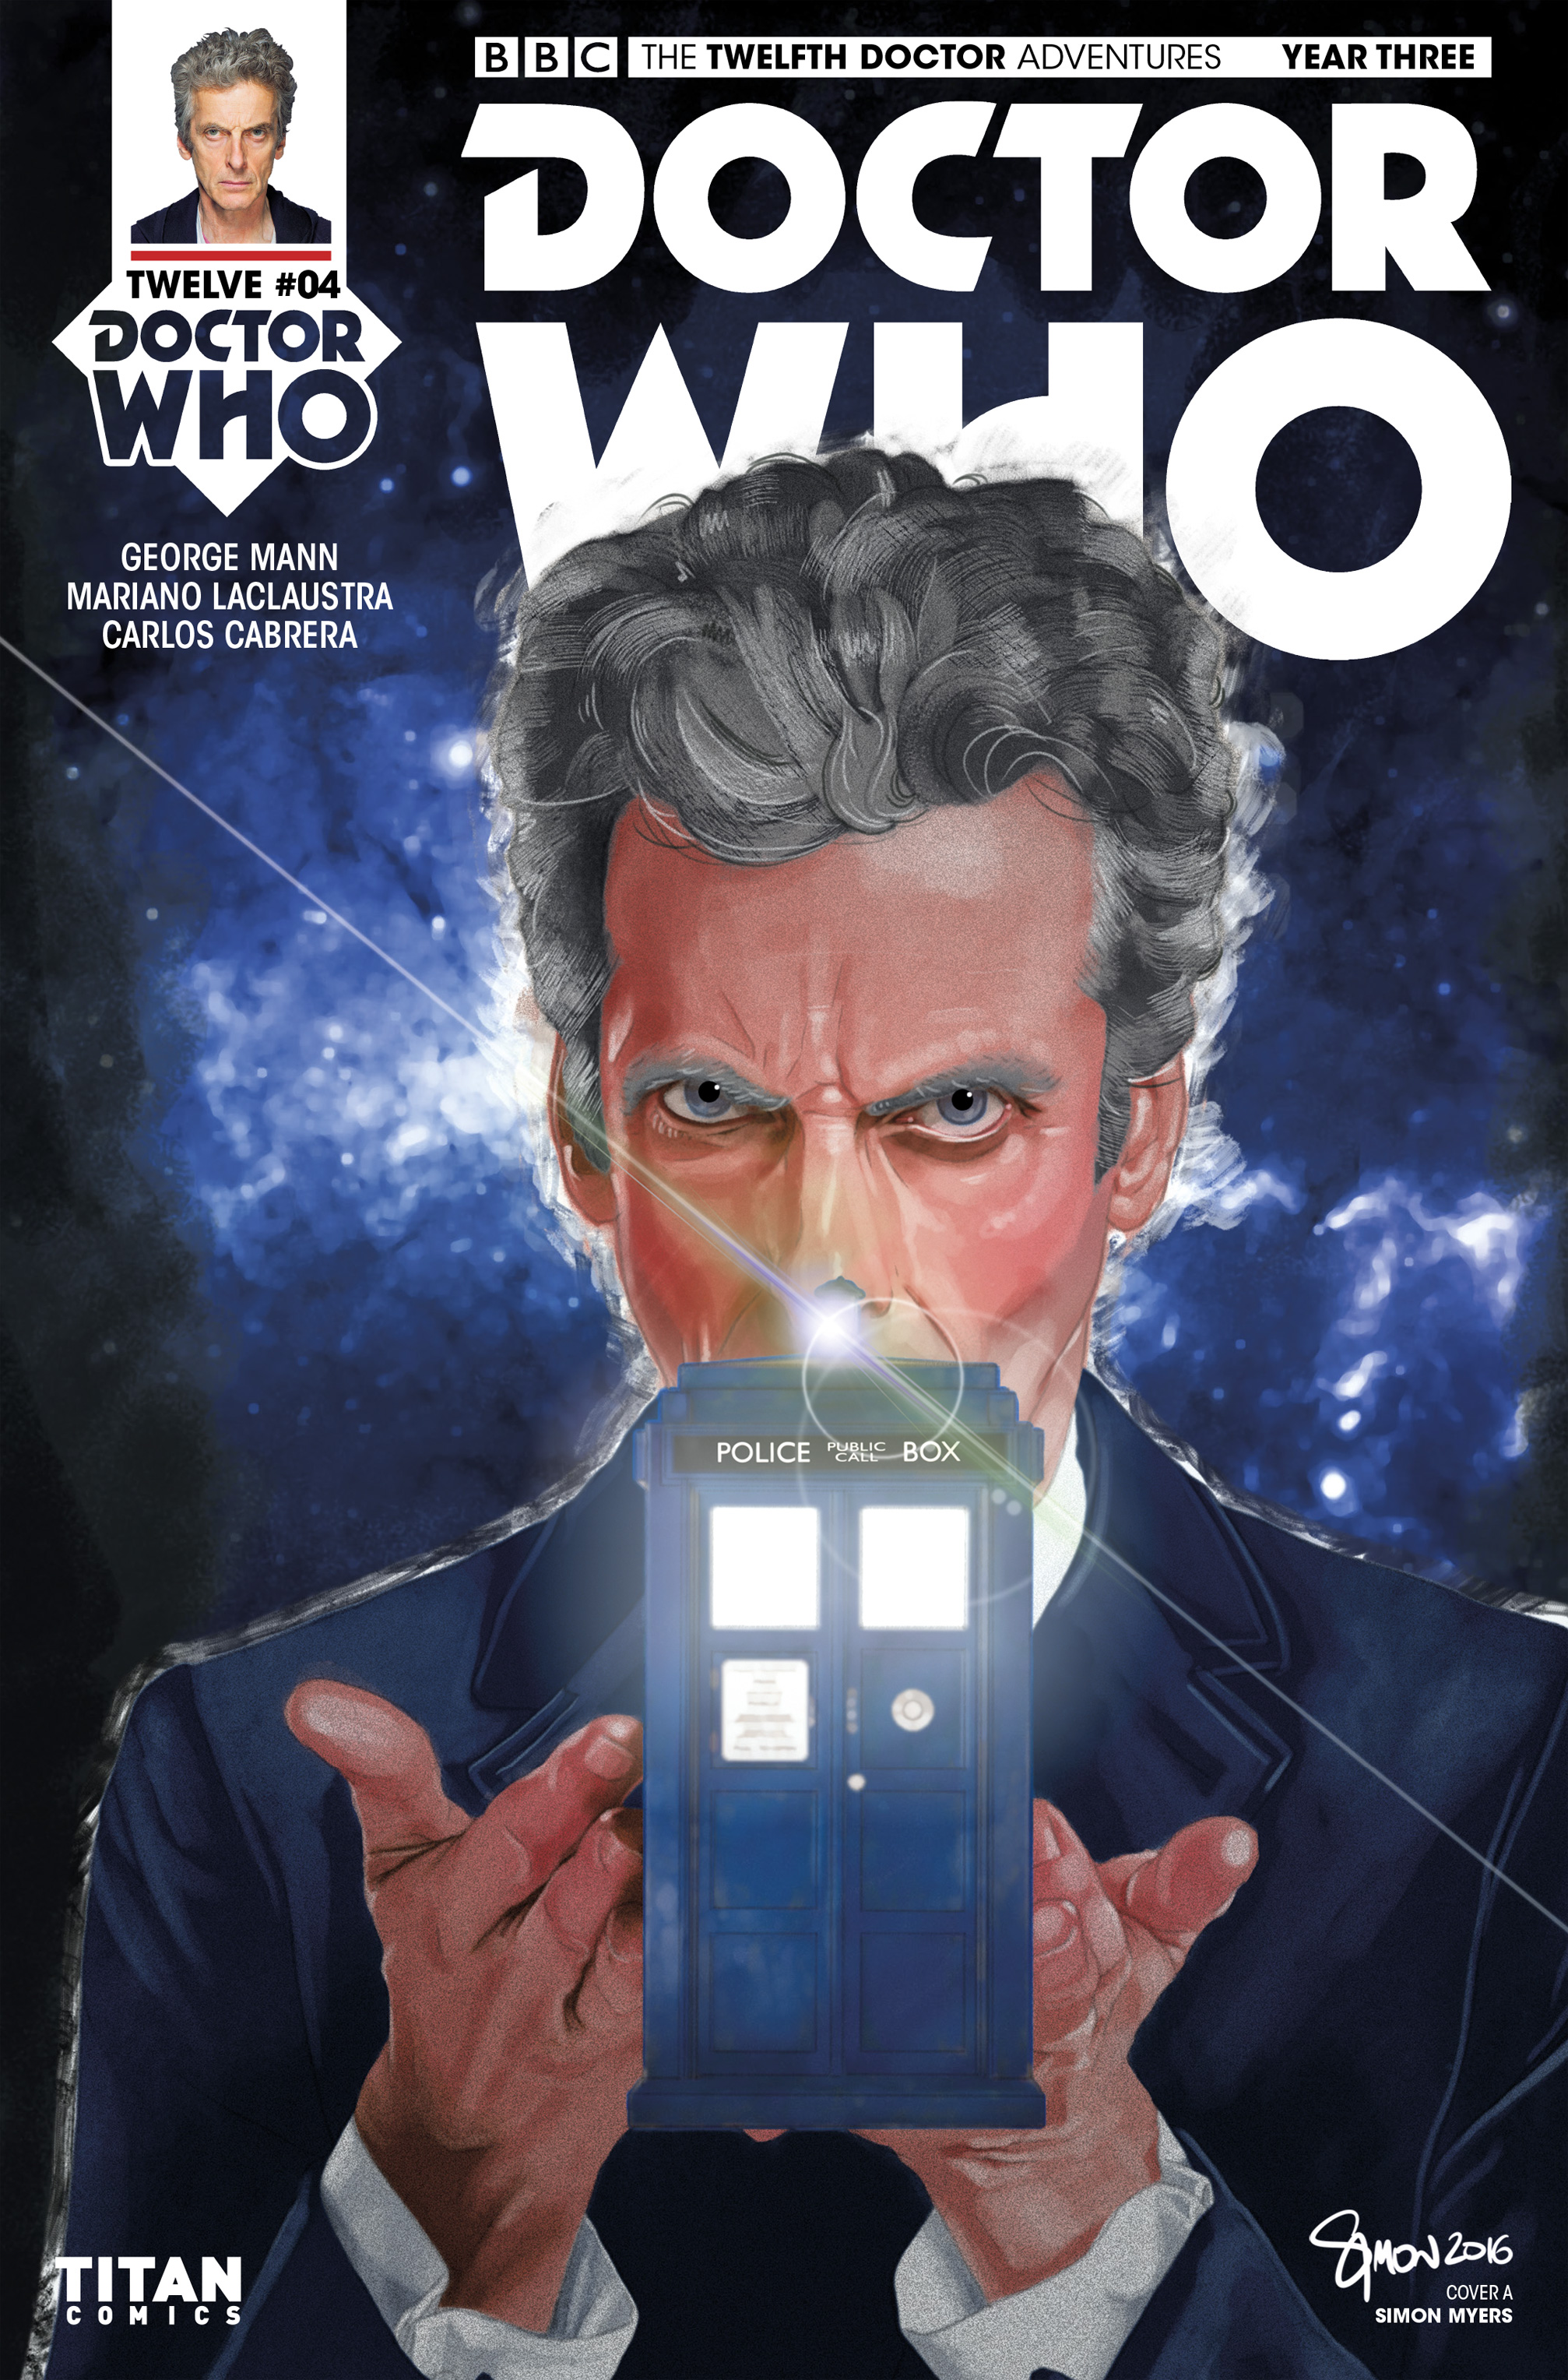 Doctor Who: The Twelfth Doctor Year Three 4 Page 1